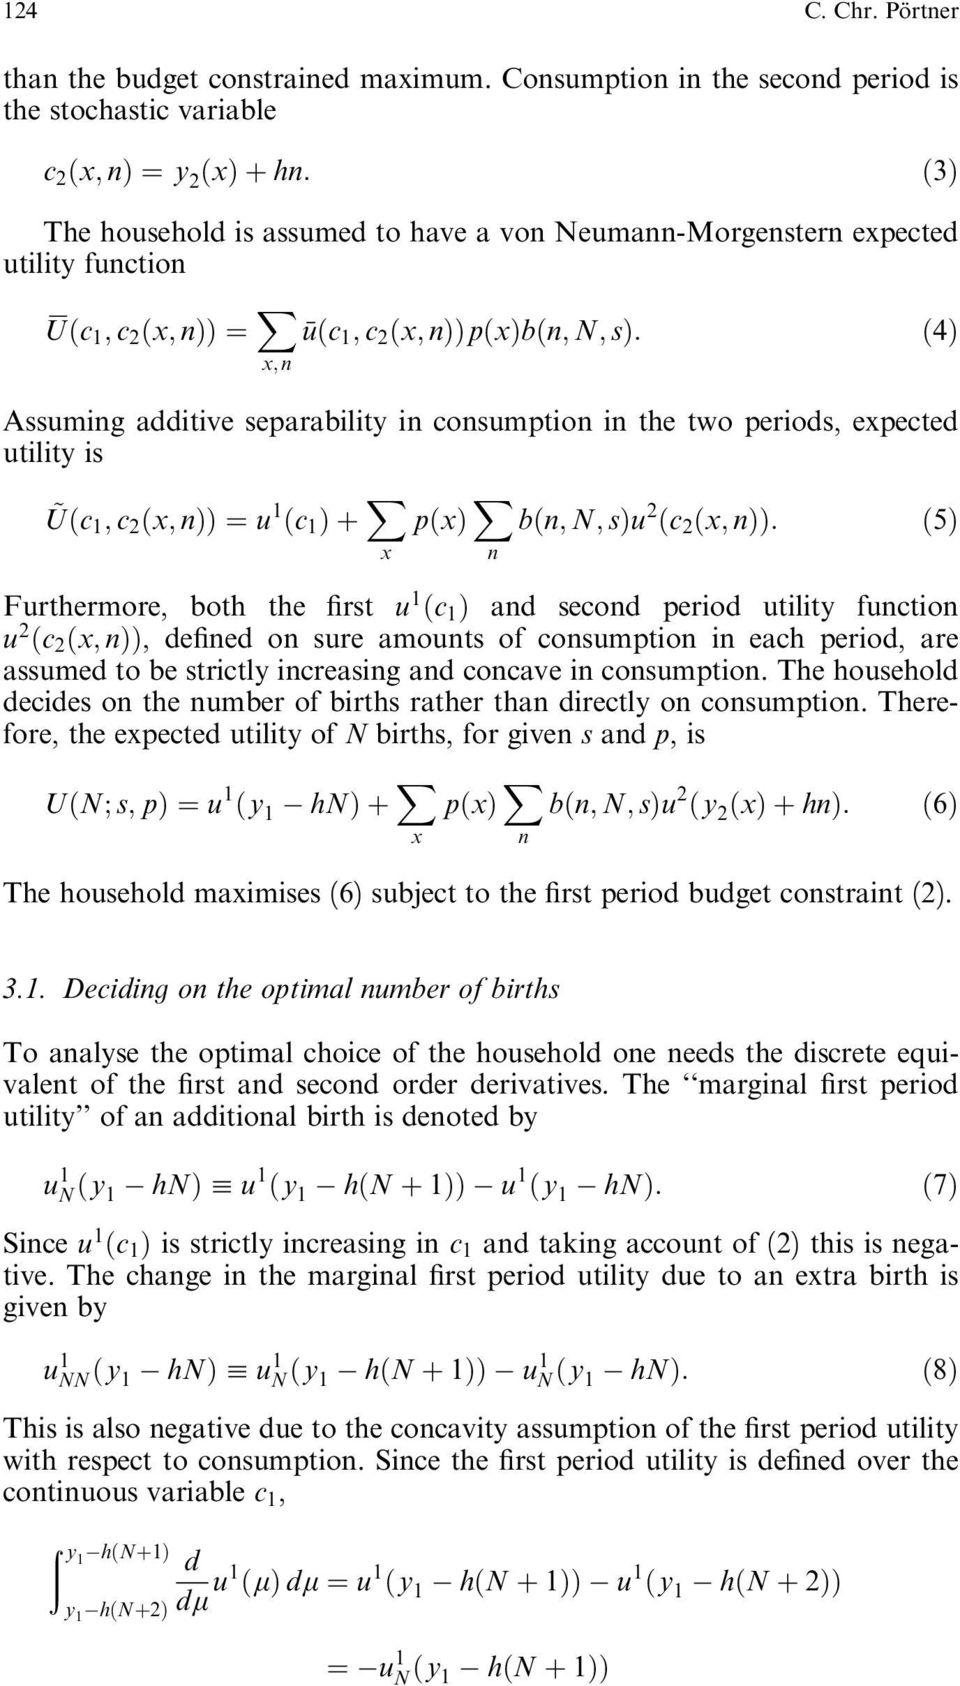 x b n; N; s : 4 x; n Assuming additive separability in consumption in te two periods, expected utility is ~U c 1 ; c 2 x; n ˆ u 1 c 1 X x p x X n b n; N; s u 2 c 2 x; n : 5 Furtermore, bot te rst u 1